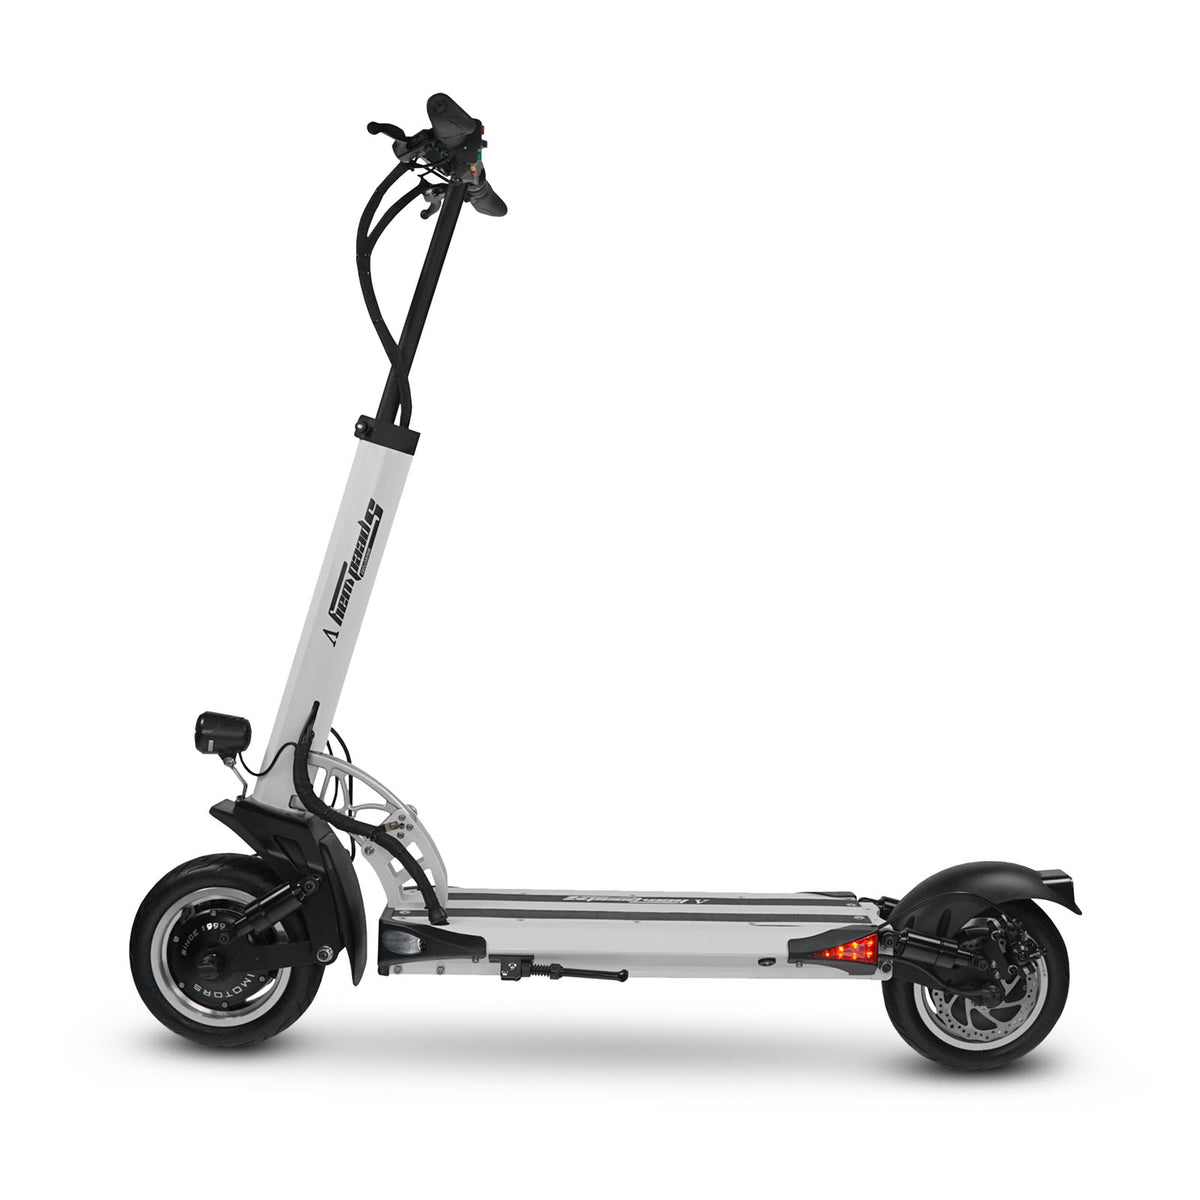 Speedway 5 Electric Scooter Side